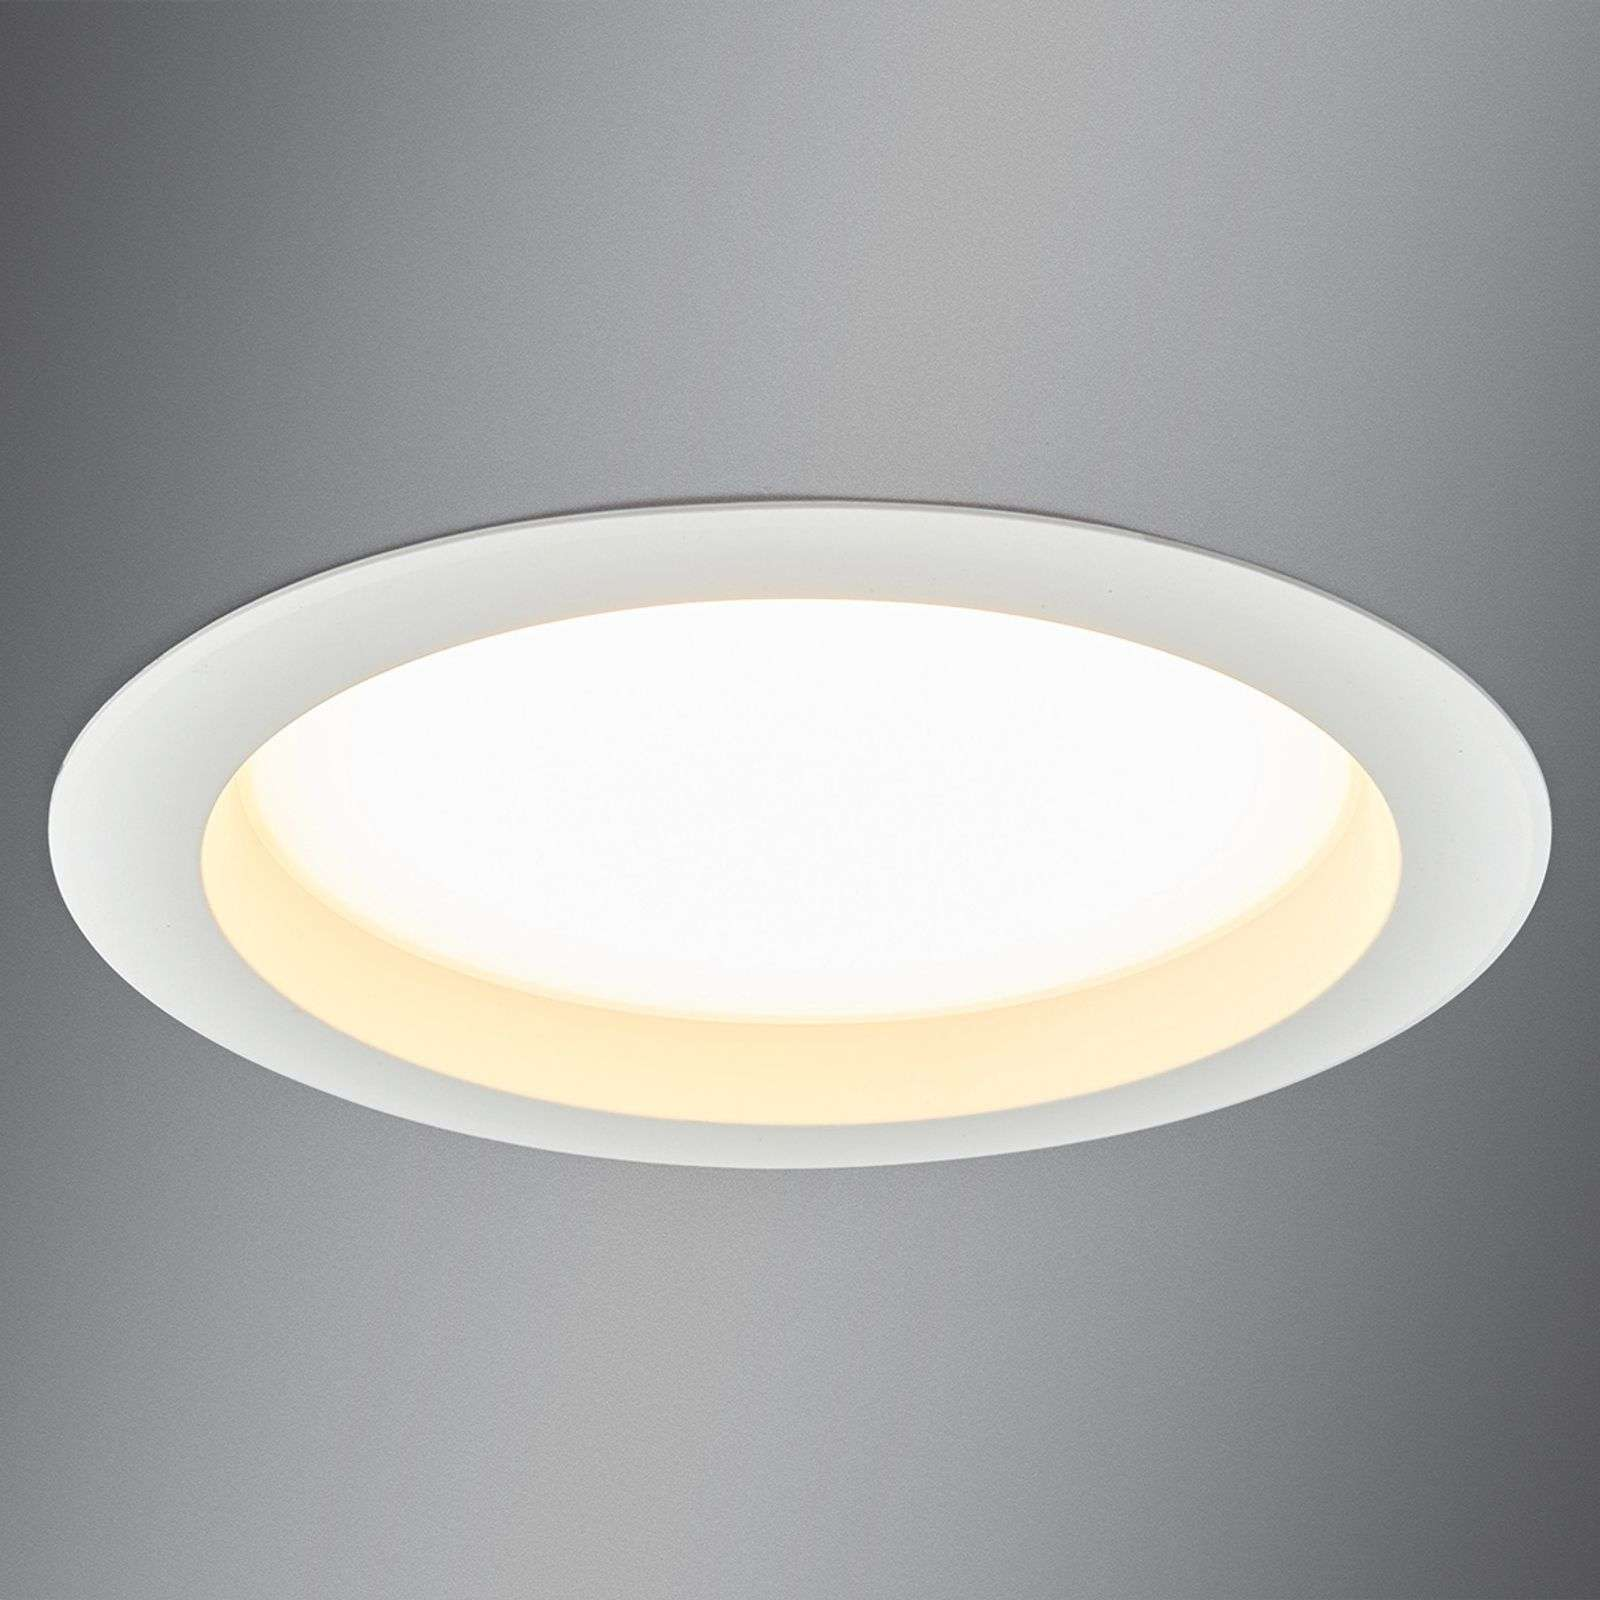 Grosso downlight LED Arian, 24,4 cm 22,5W